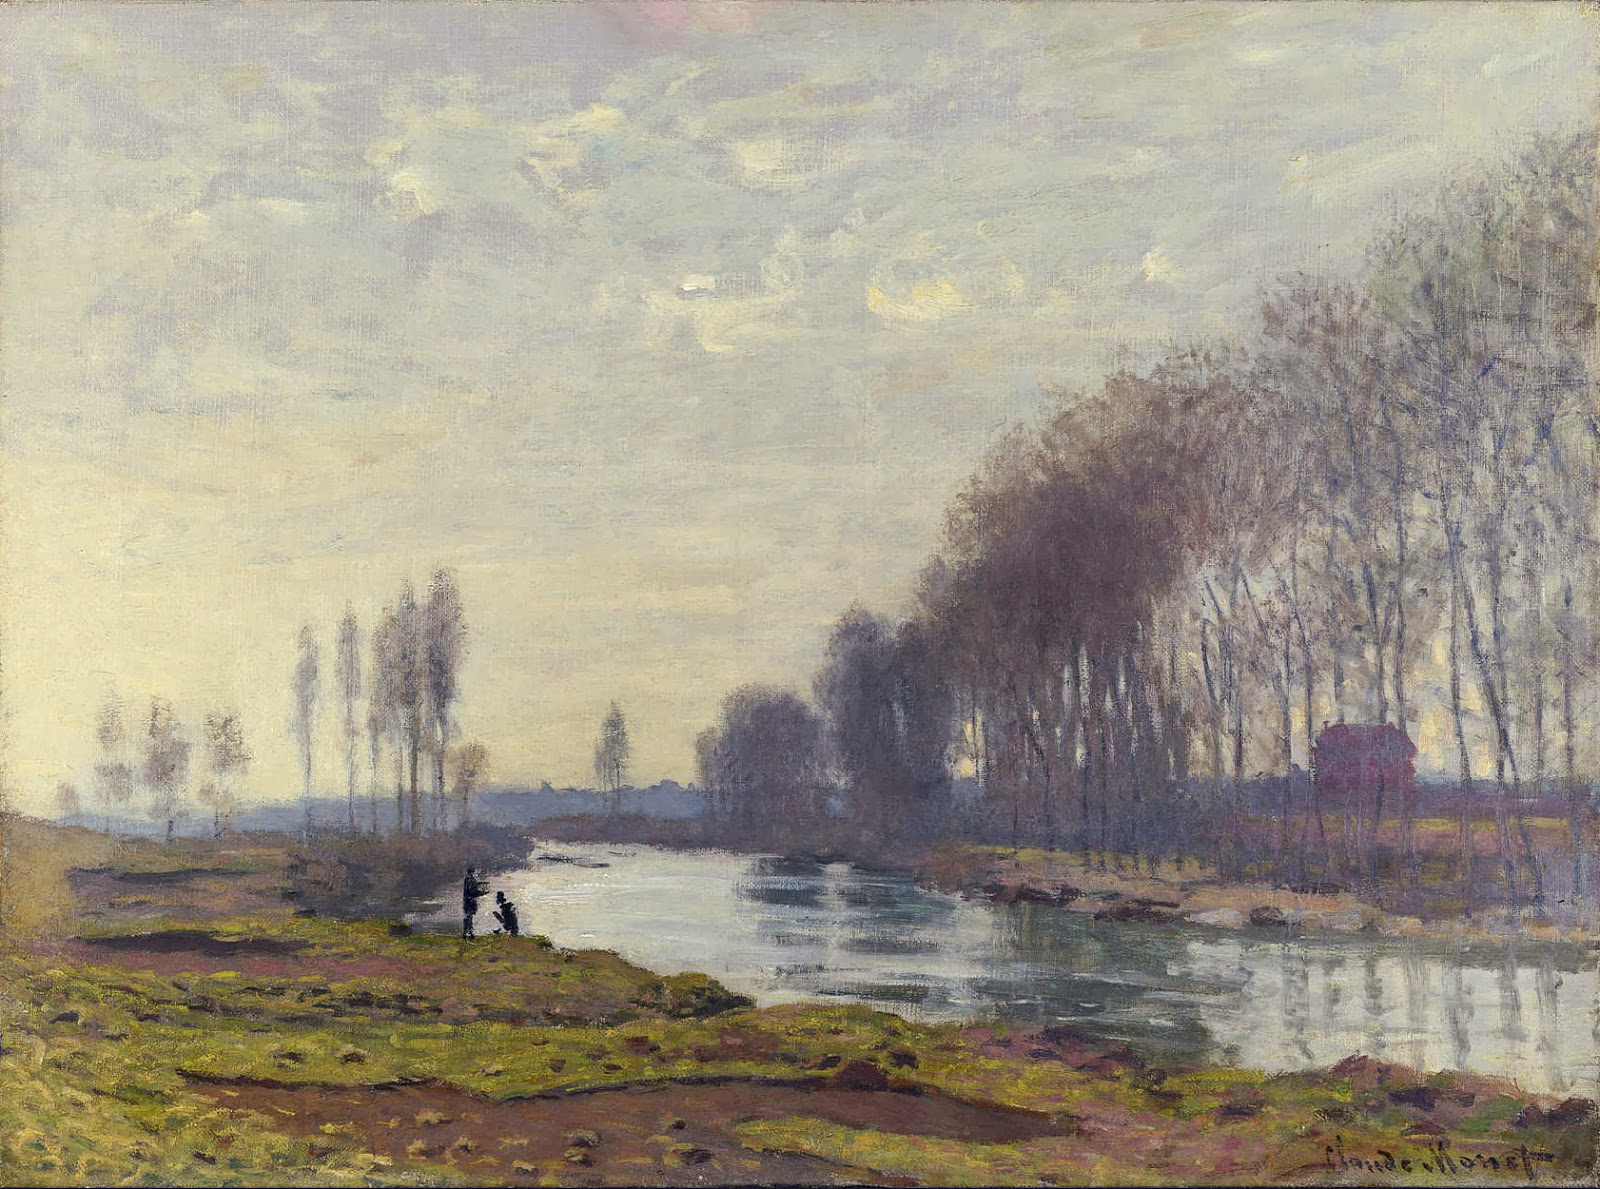 art artists claude monet part 6 1872 1873 claude monet 1872 the small arm of the seine at argenteuil oil on canvas 52 6 x 71 8 cm the national gallery london